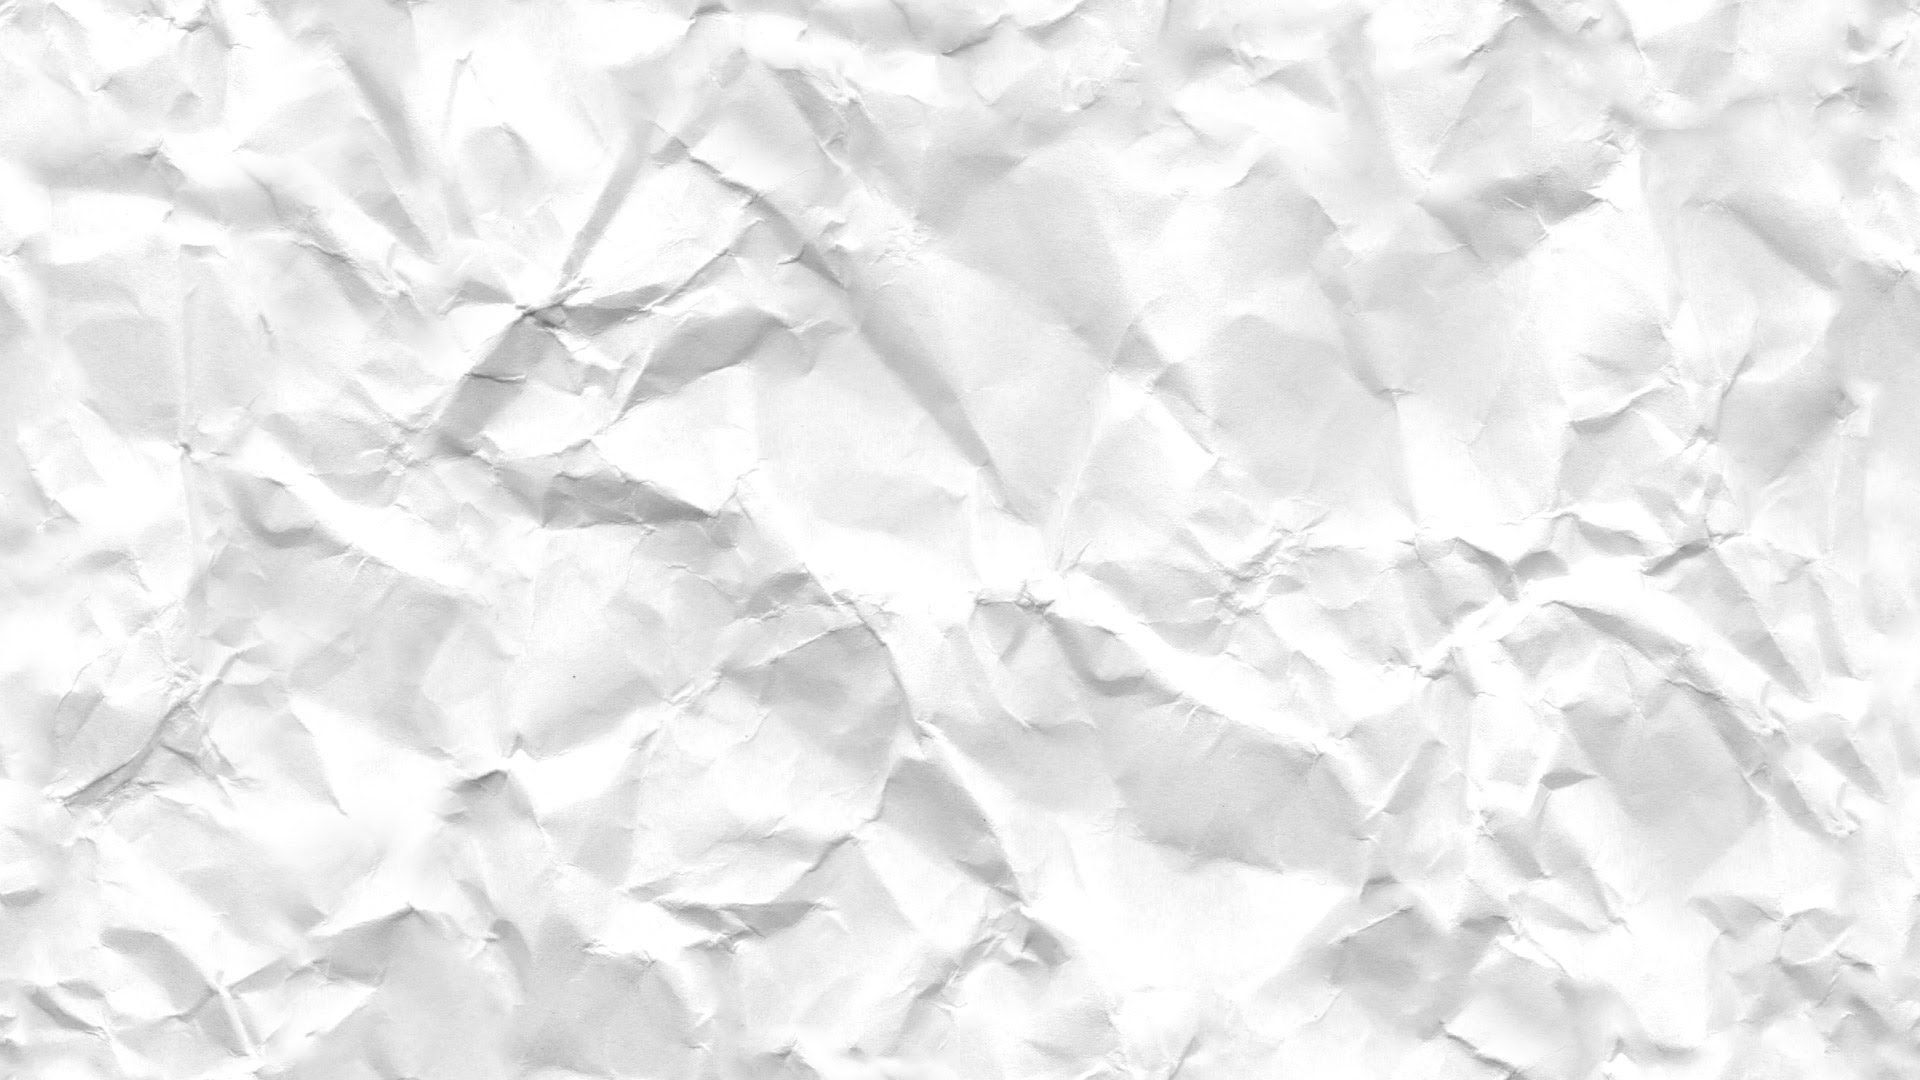 How To Turn A Photo Into A Seamless Tileable Texture In Photoshop Photoshop Textures Crumpled Paper Textures Photoshop